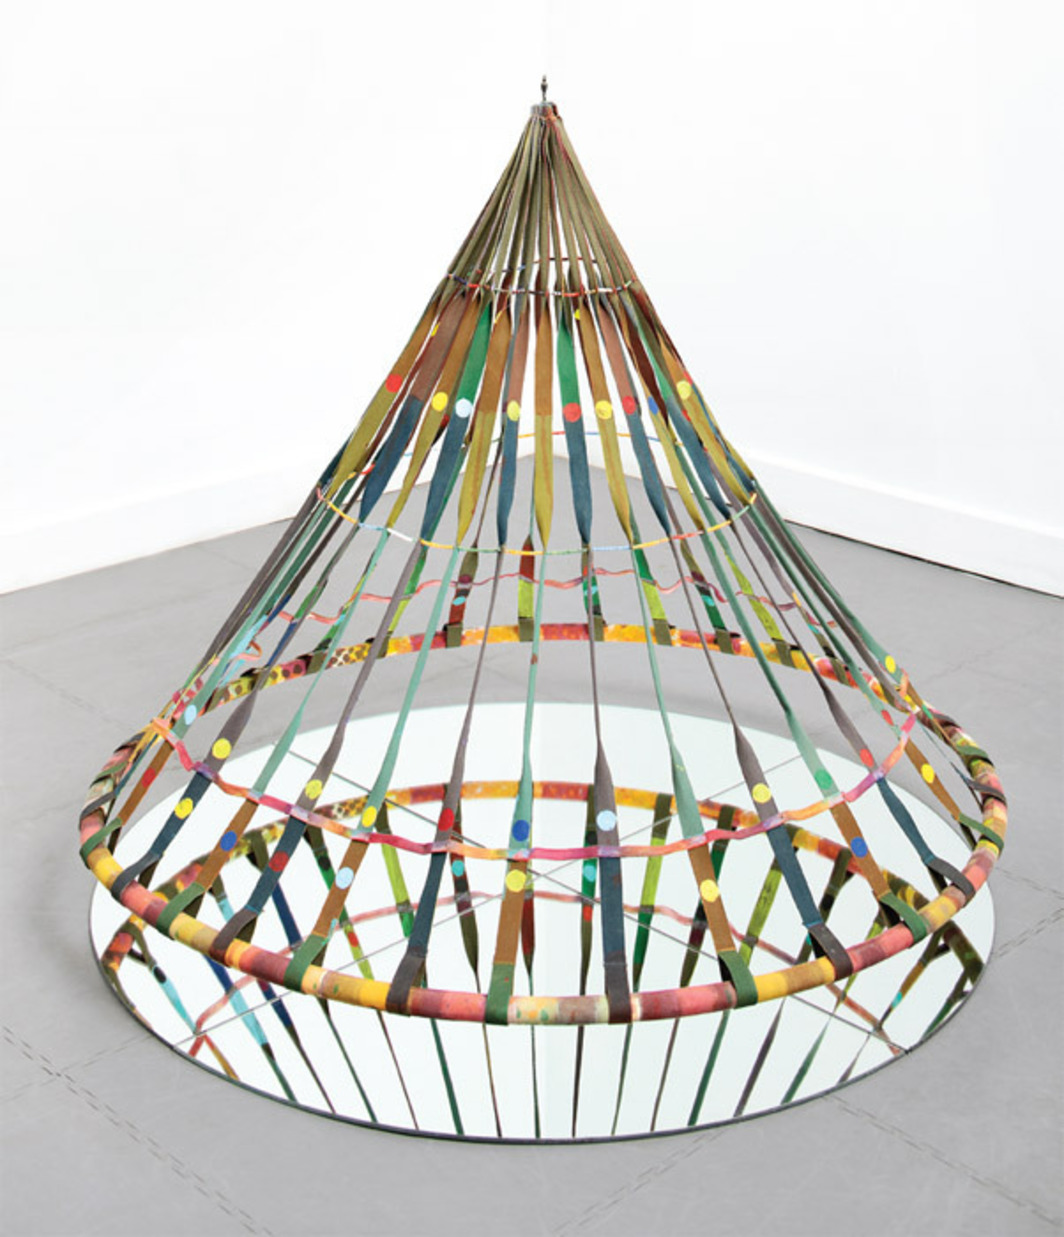 "Alan Shields, Dance Bag, 1985, acrylic, canvas, glass beads, thread, aluminum tubing, mirror, 40 x 48 x 48""."